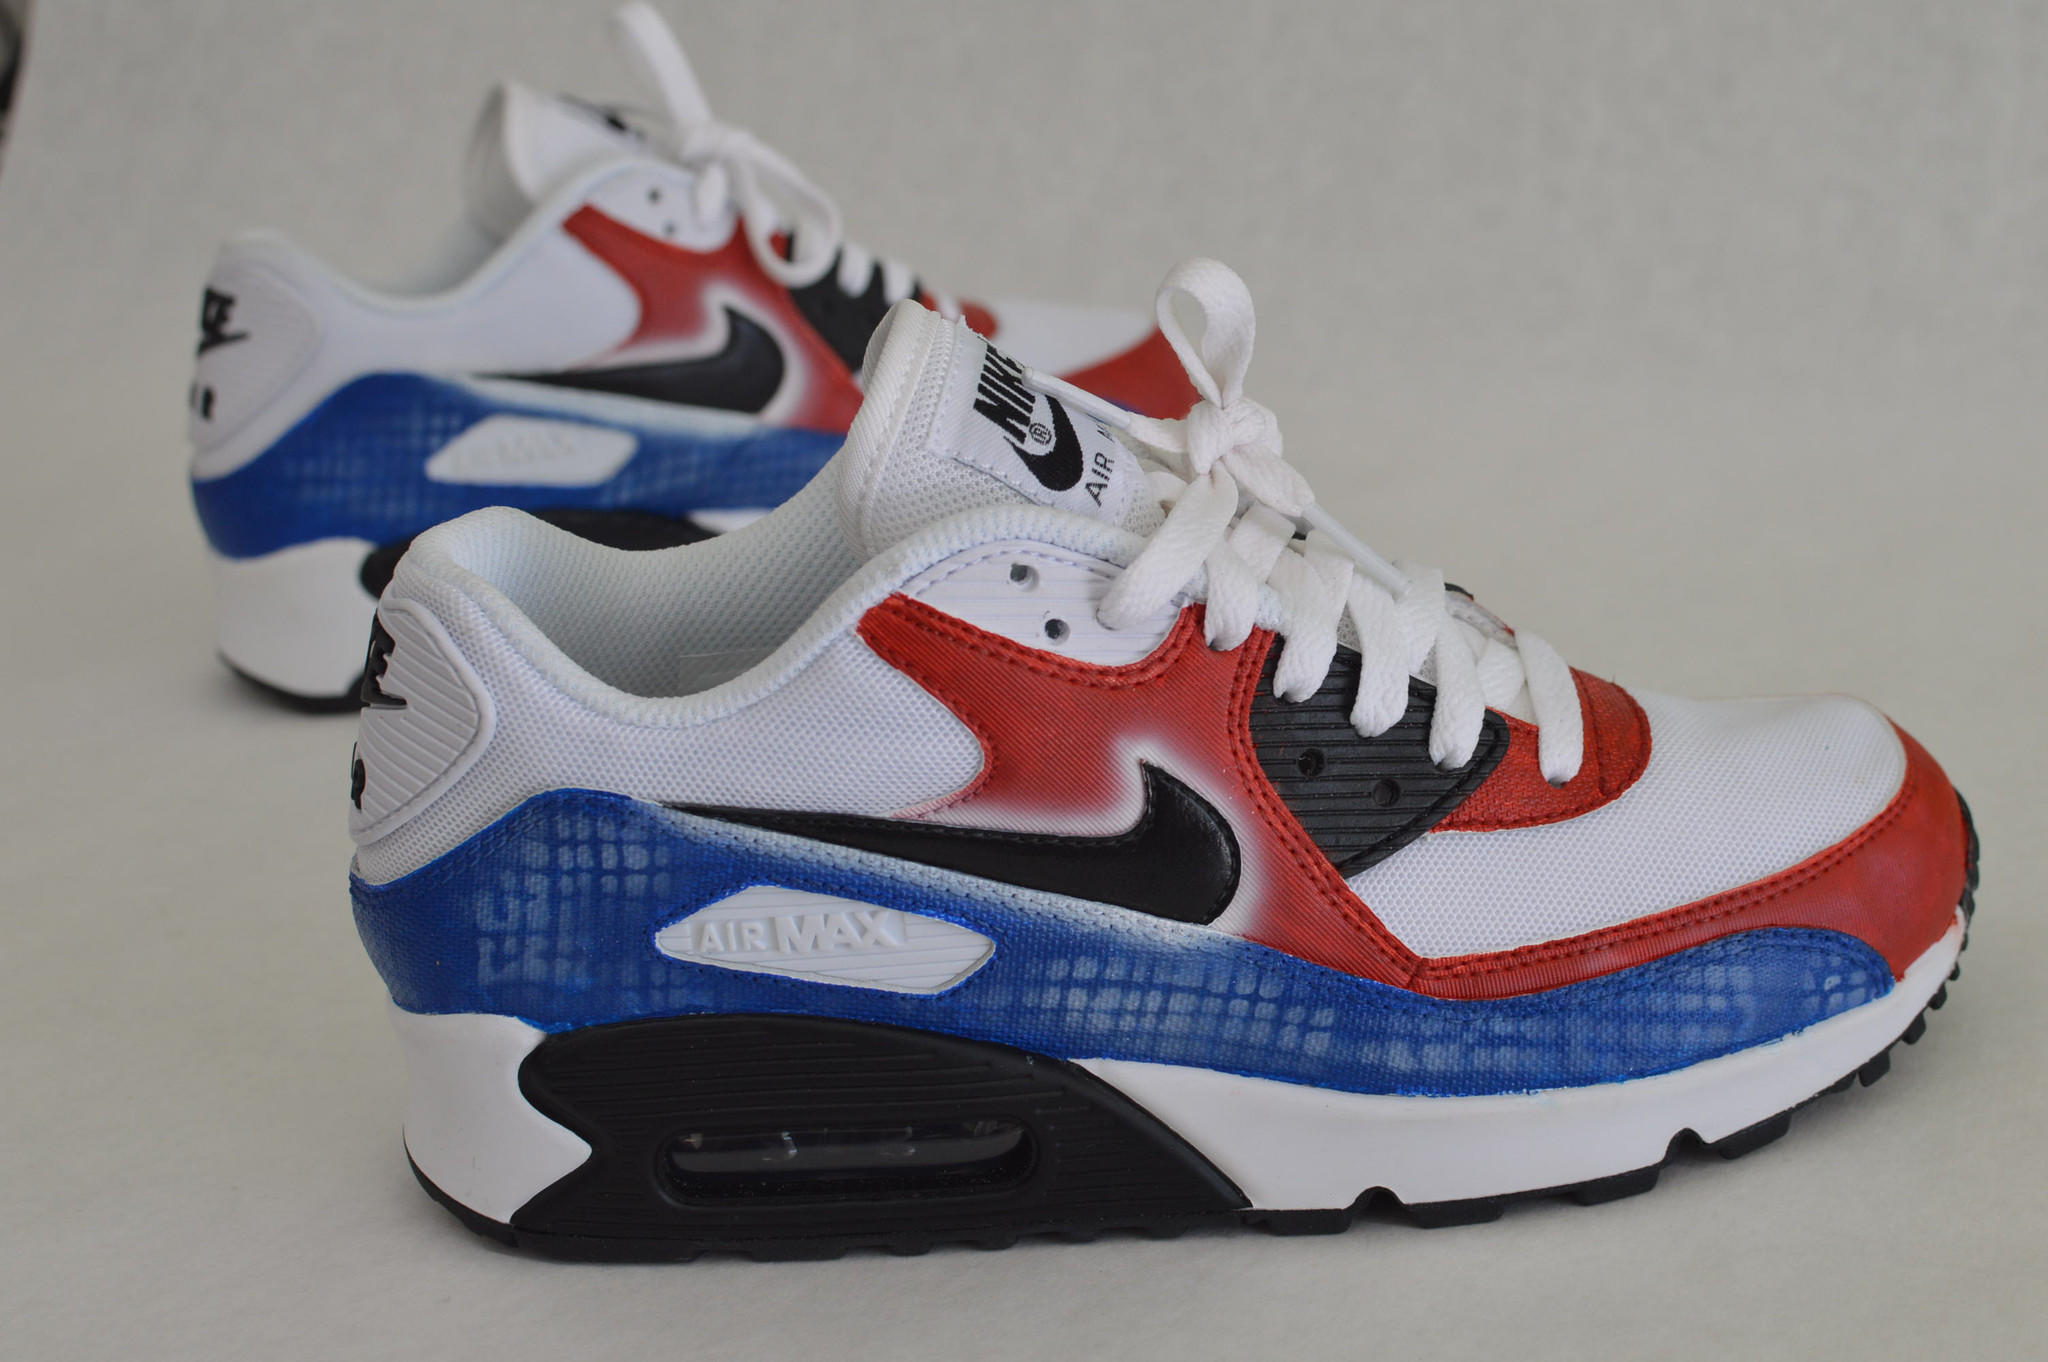 Custom Hand Painted Nike Air Max 90 from bstreetshoes.com 8782c7af0a